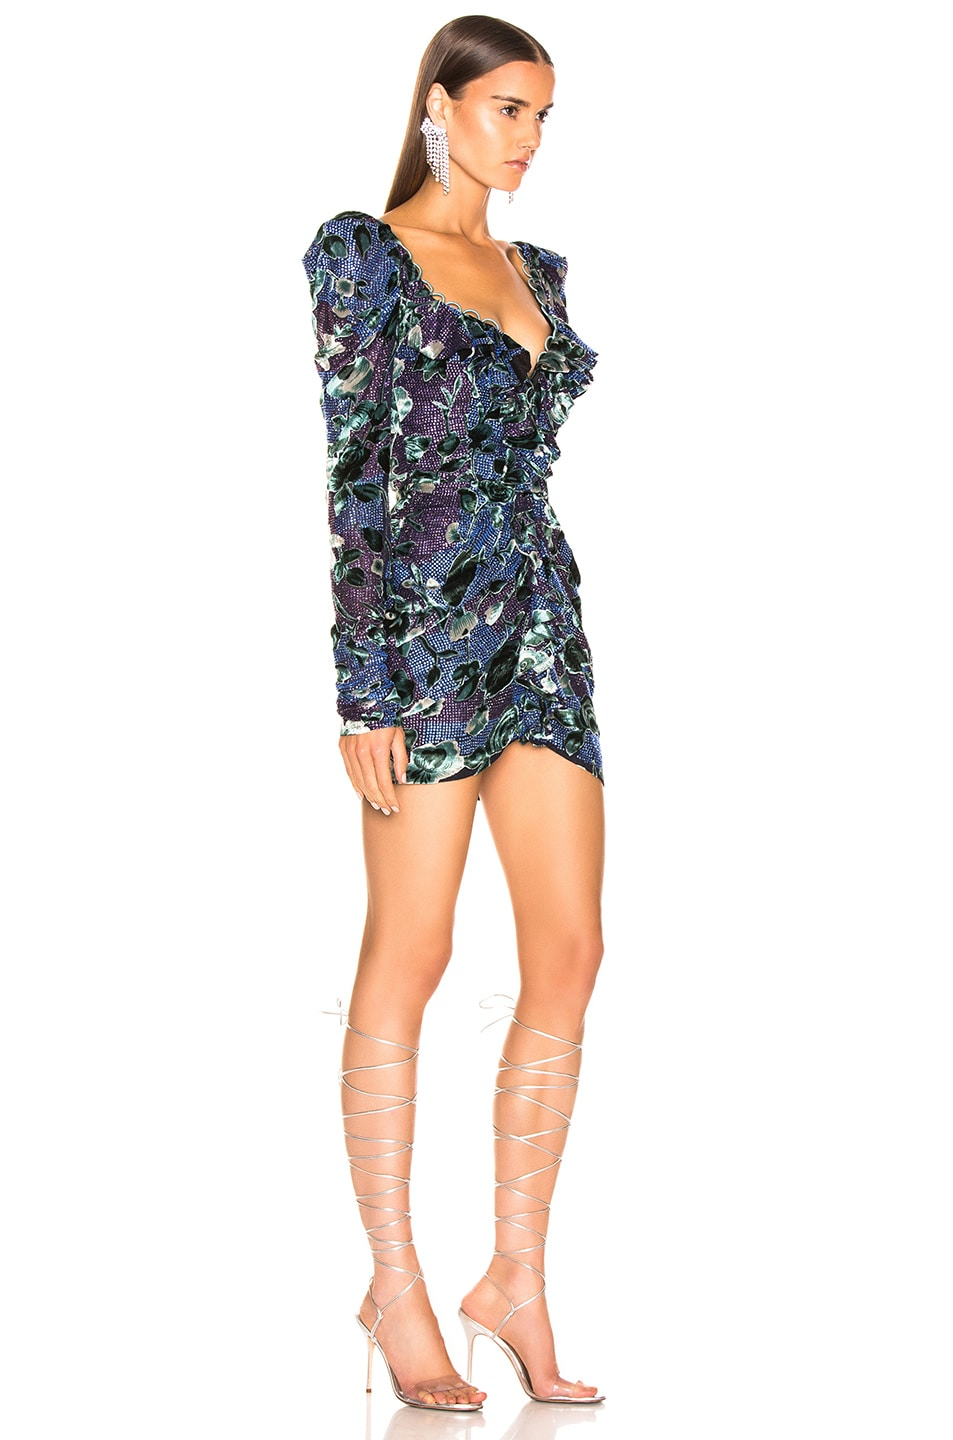 Image 2 of RAISA&VANESSA Strass Embellished Ruffled Mini Dress in Floral